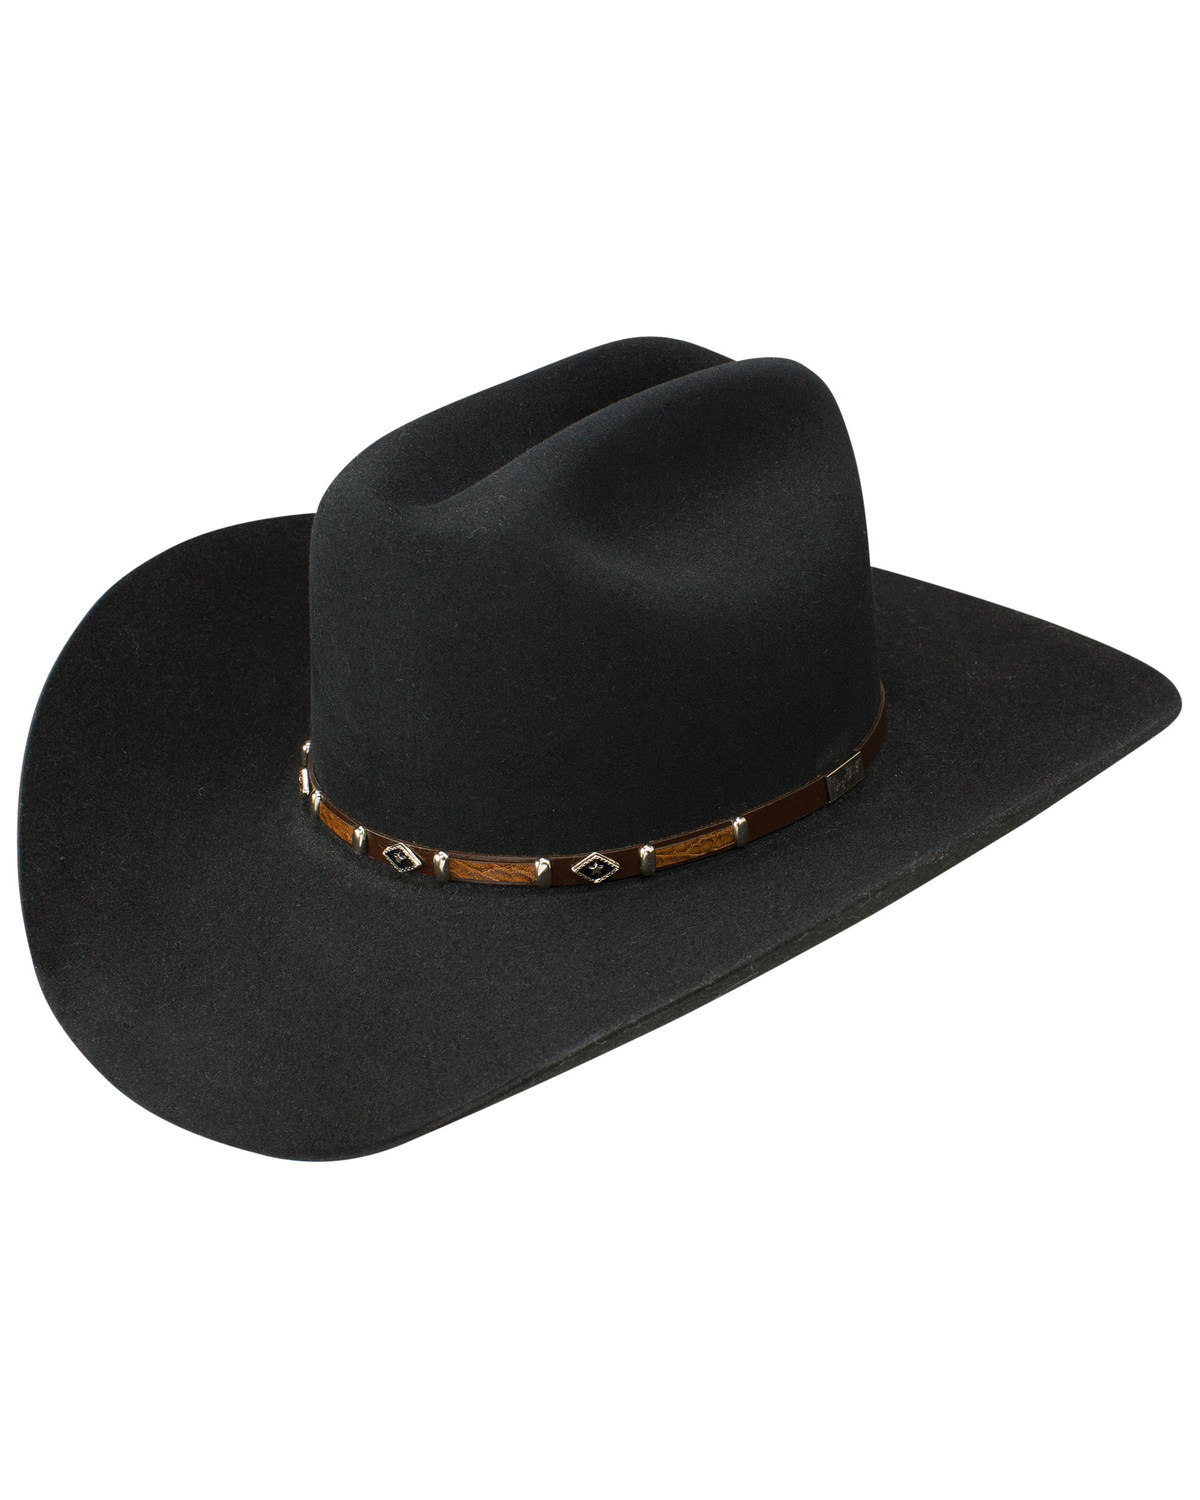 e448c4f141097 George Strait by Resistol Black Rock 6x Felt Cowboy Hat